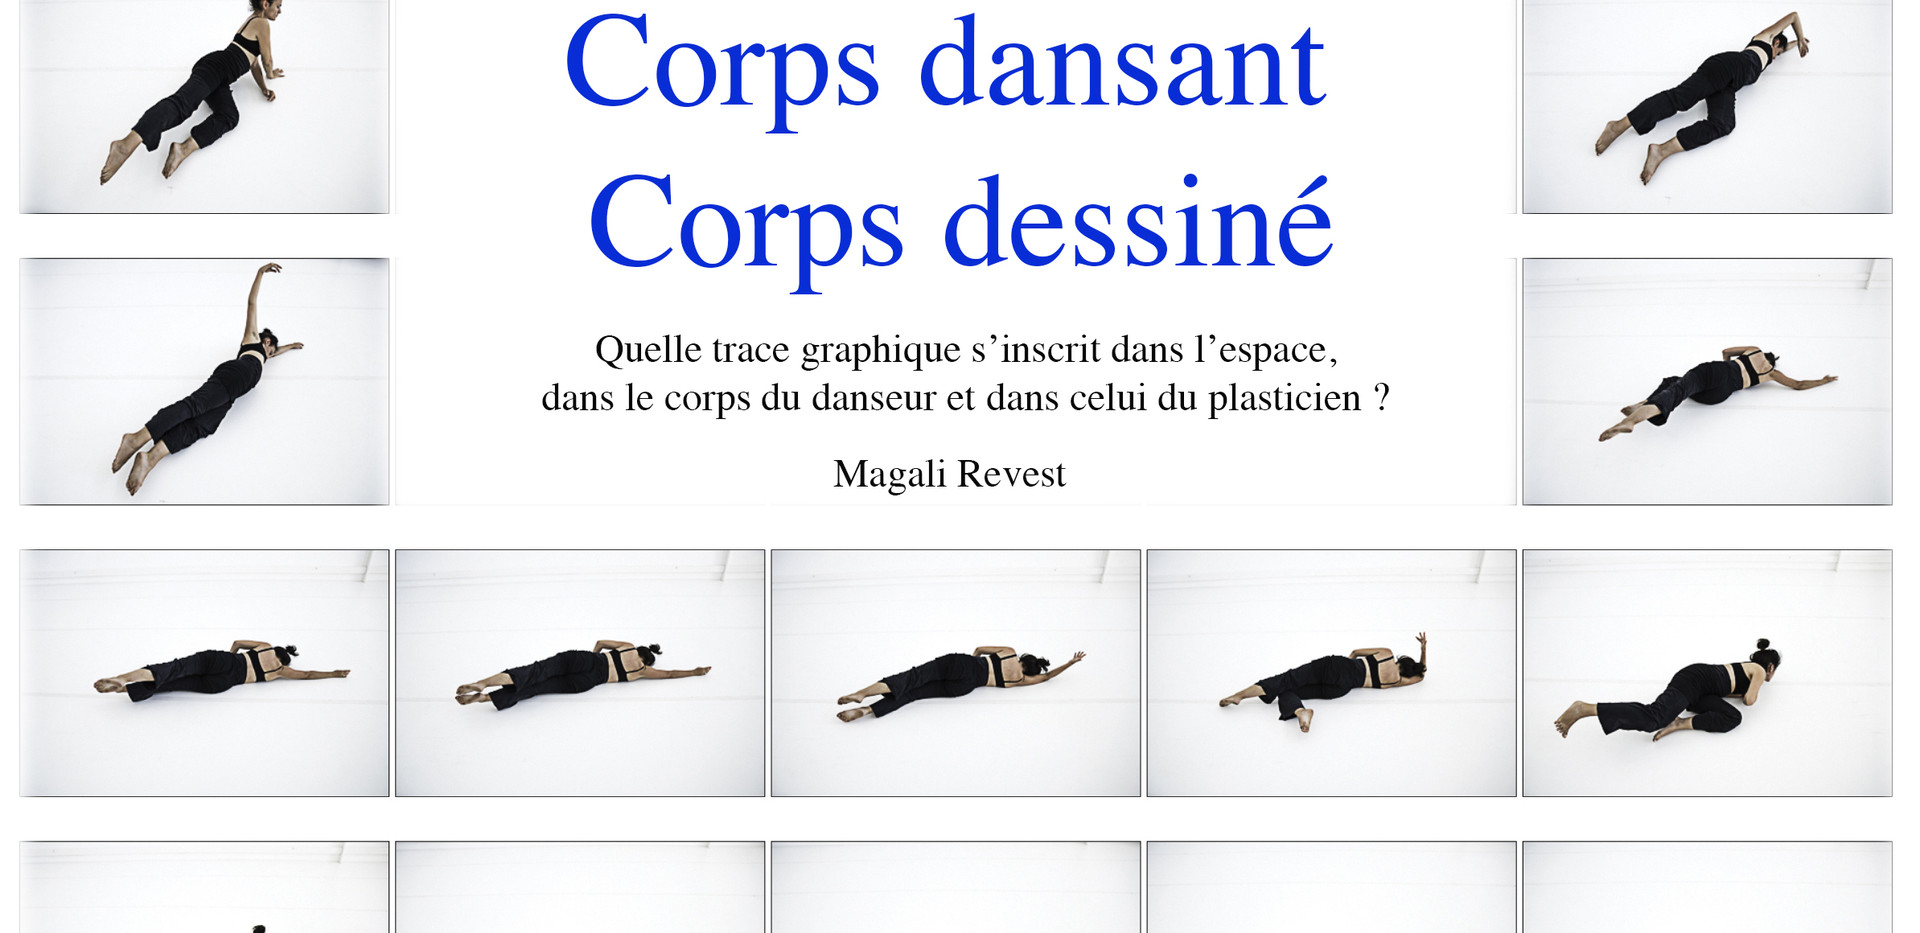 Couverture2.jpg